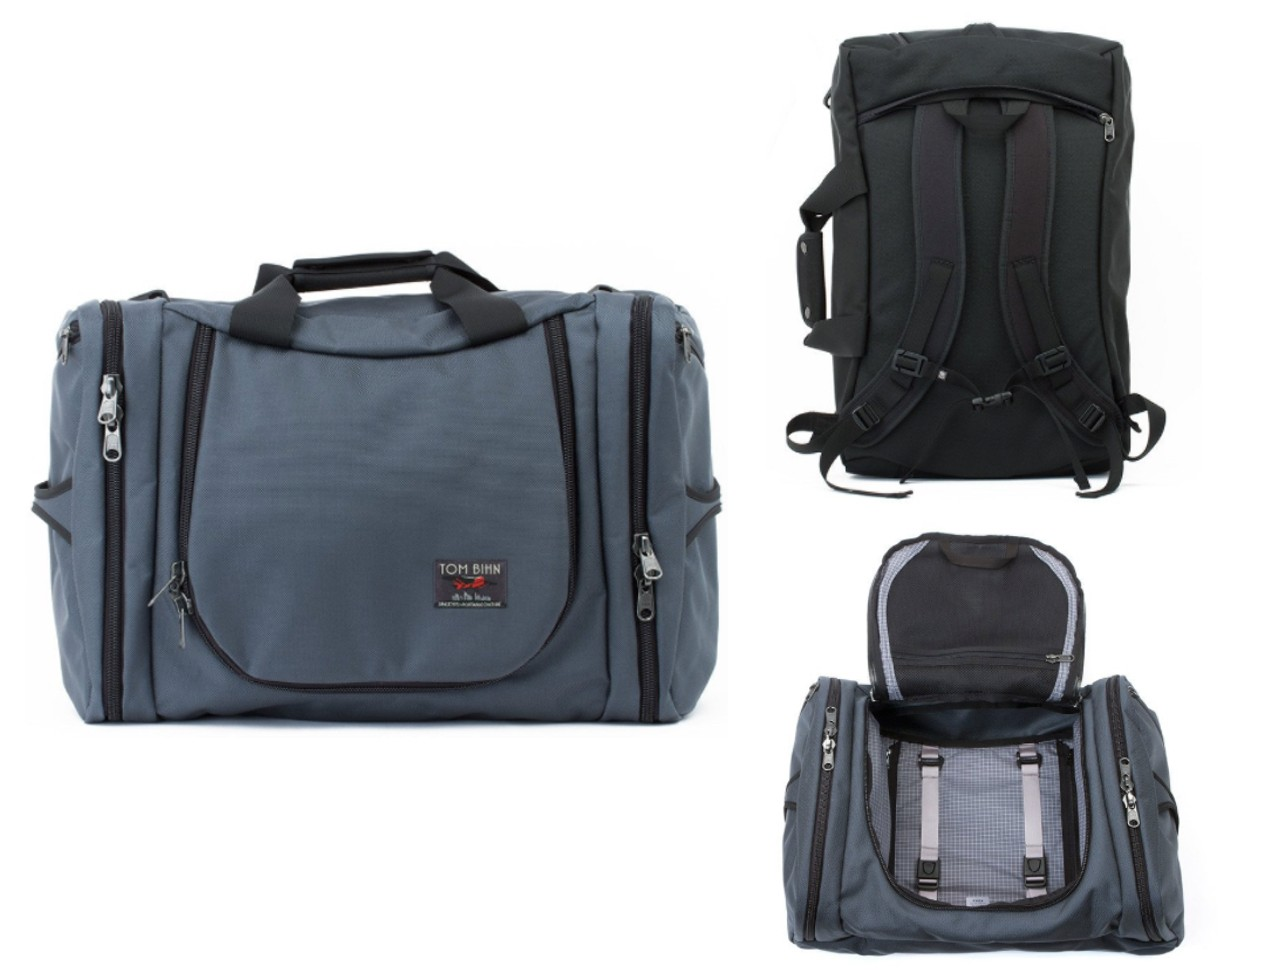 Tom Bihn Aeronaut 45 multi-view